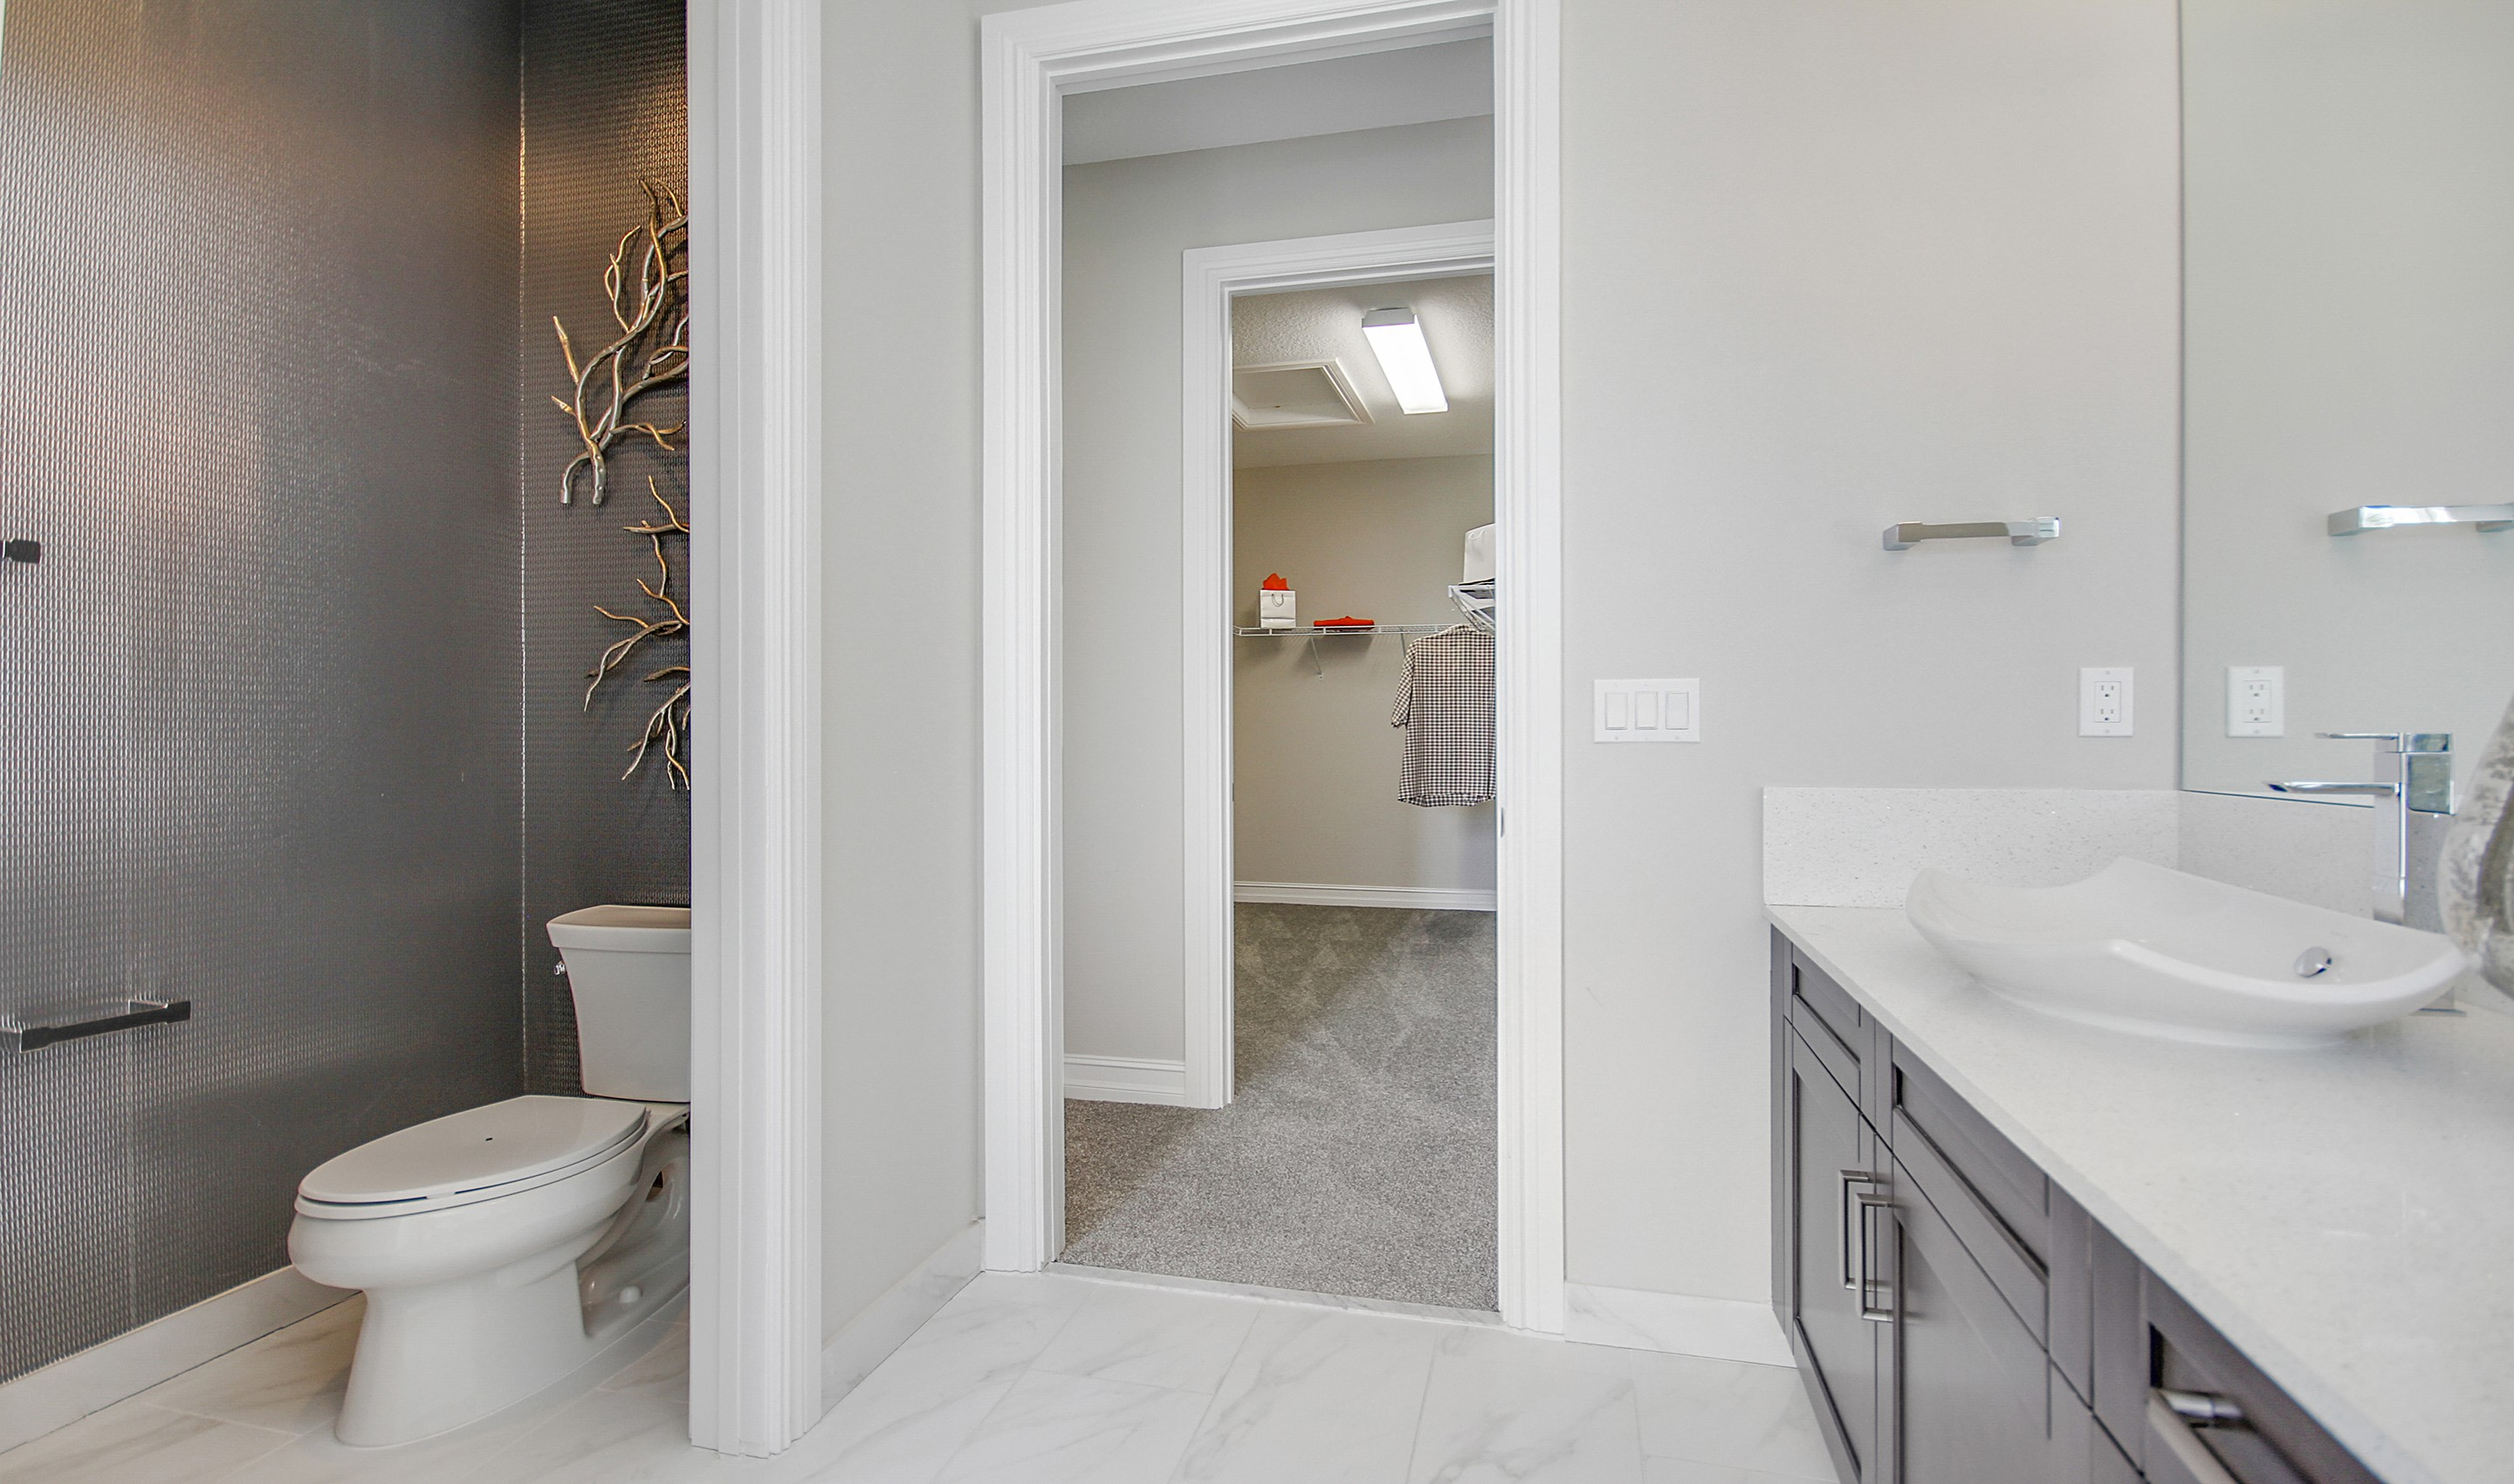 Owner's bath with double sinks